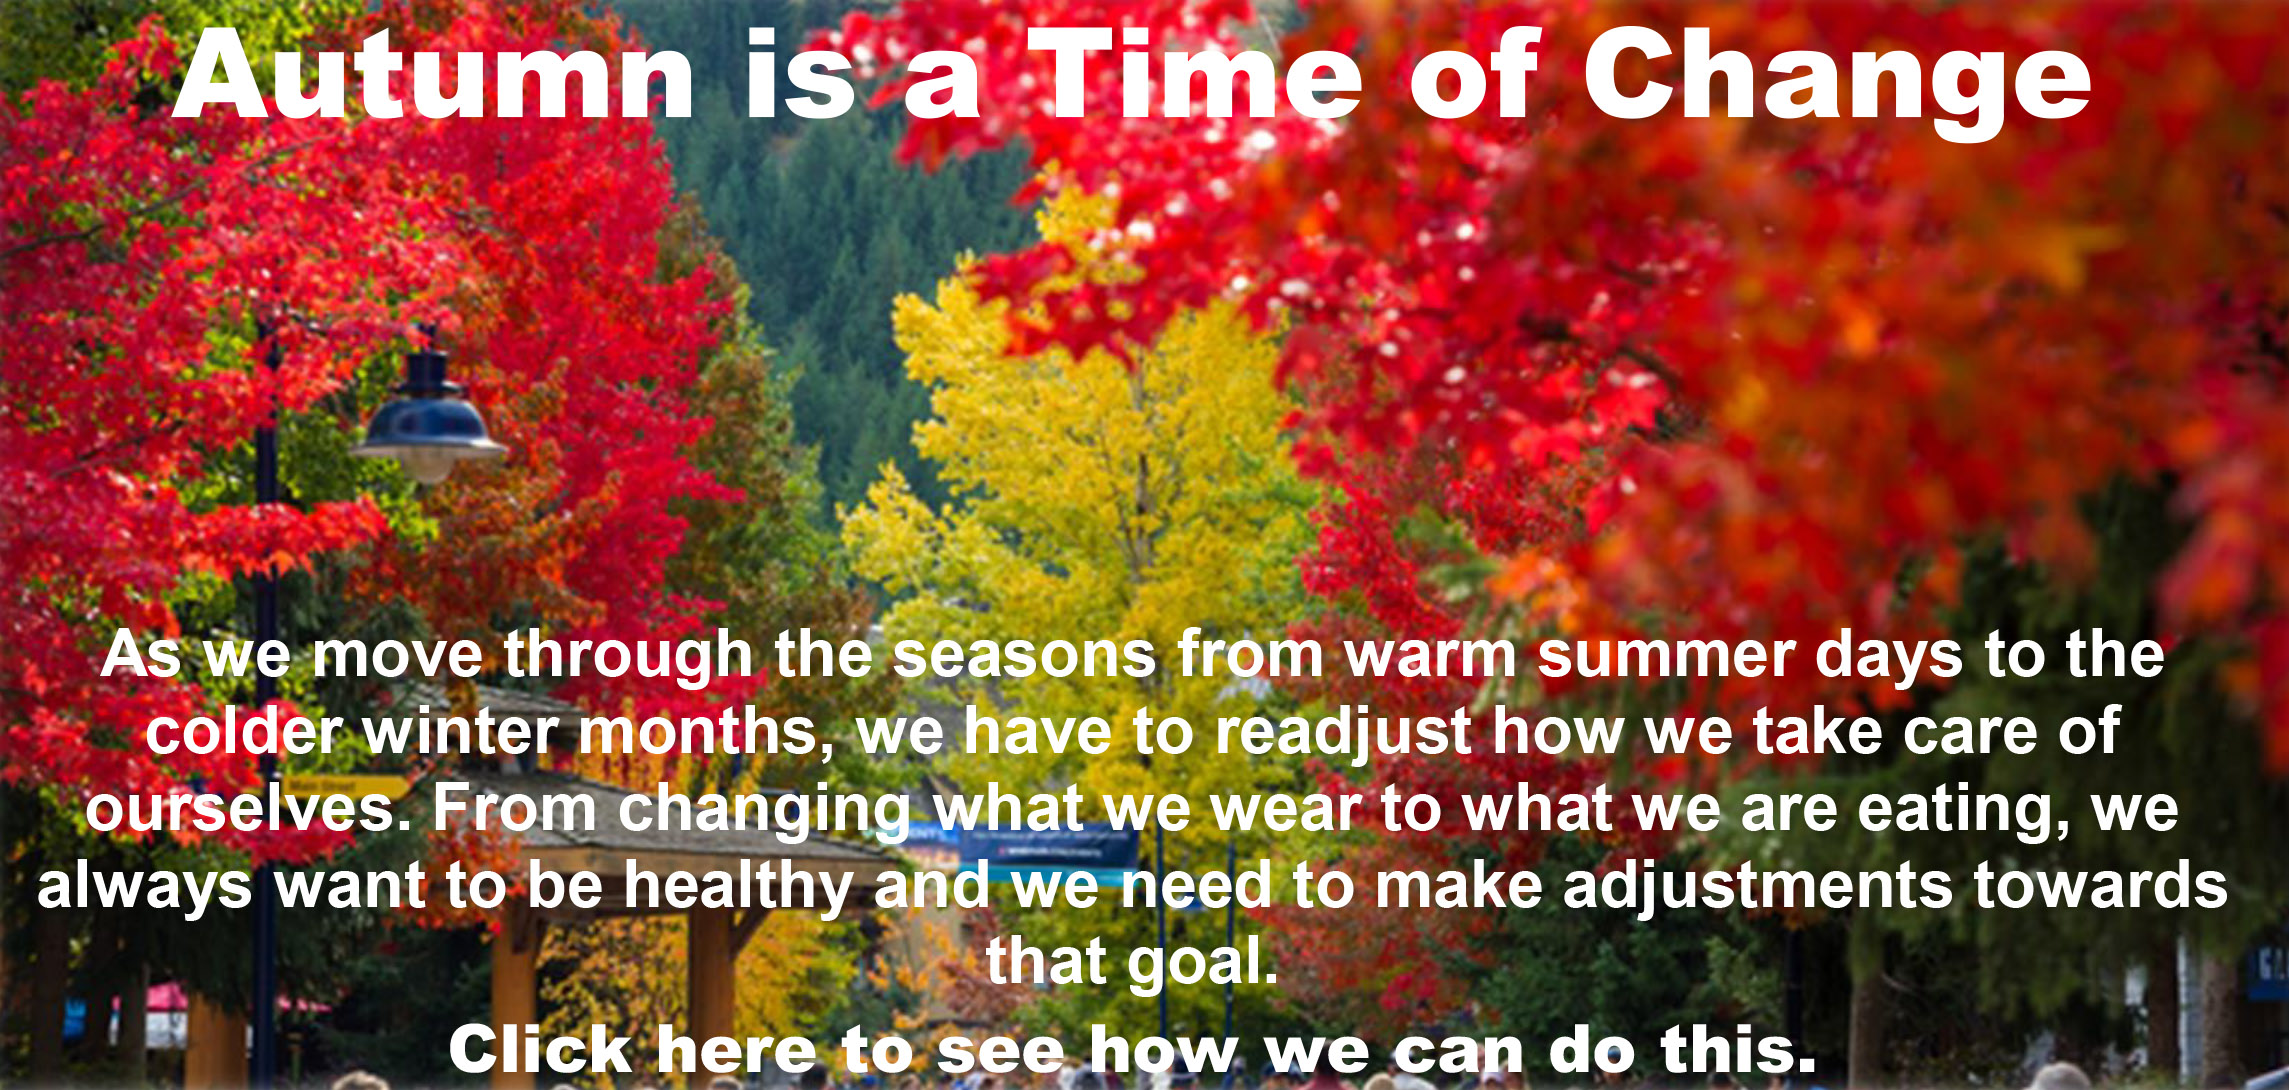 Autumn is a time of change